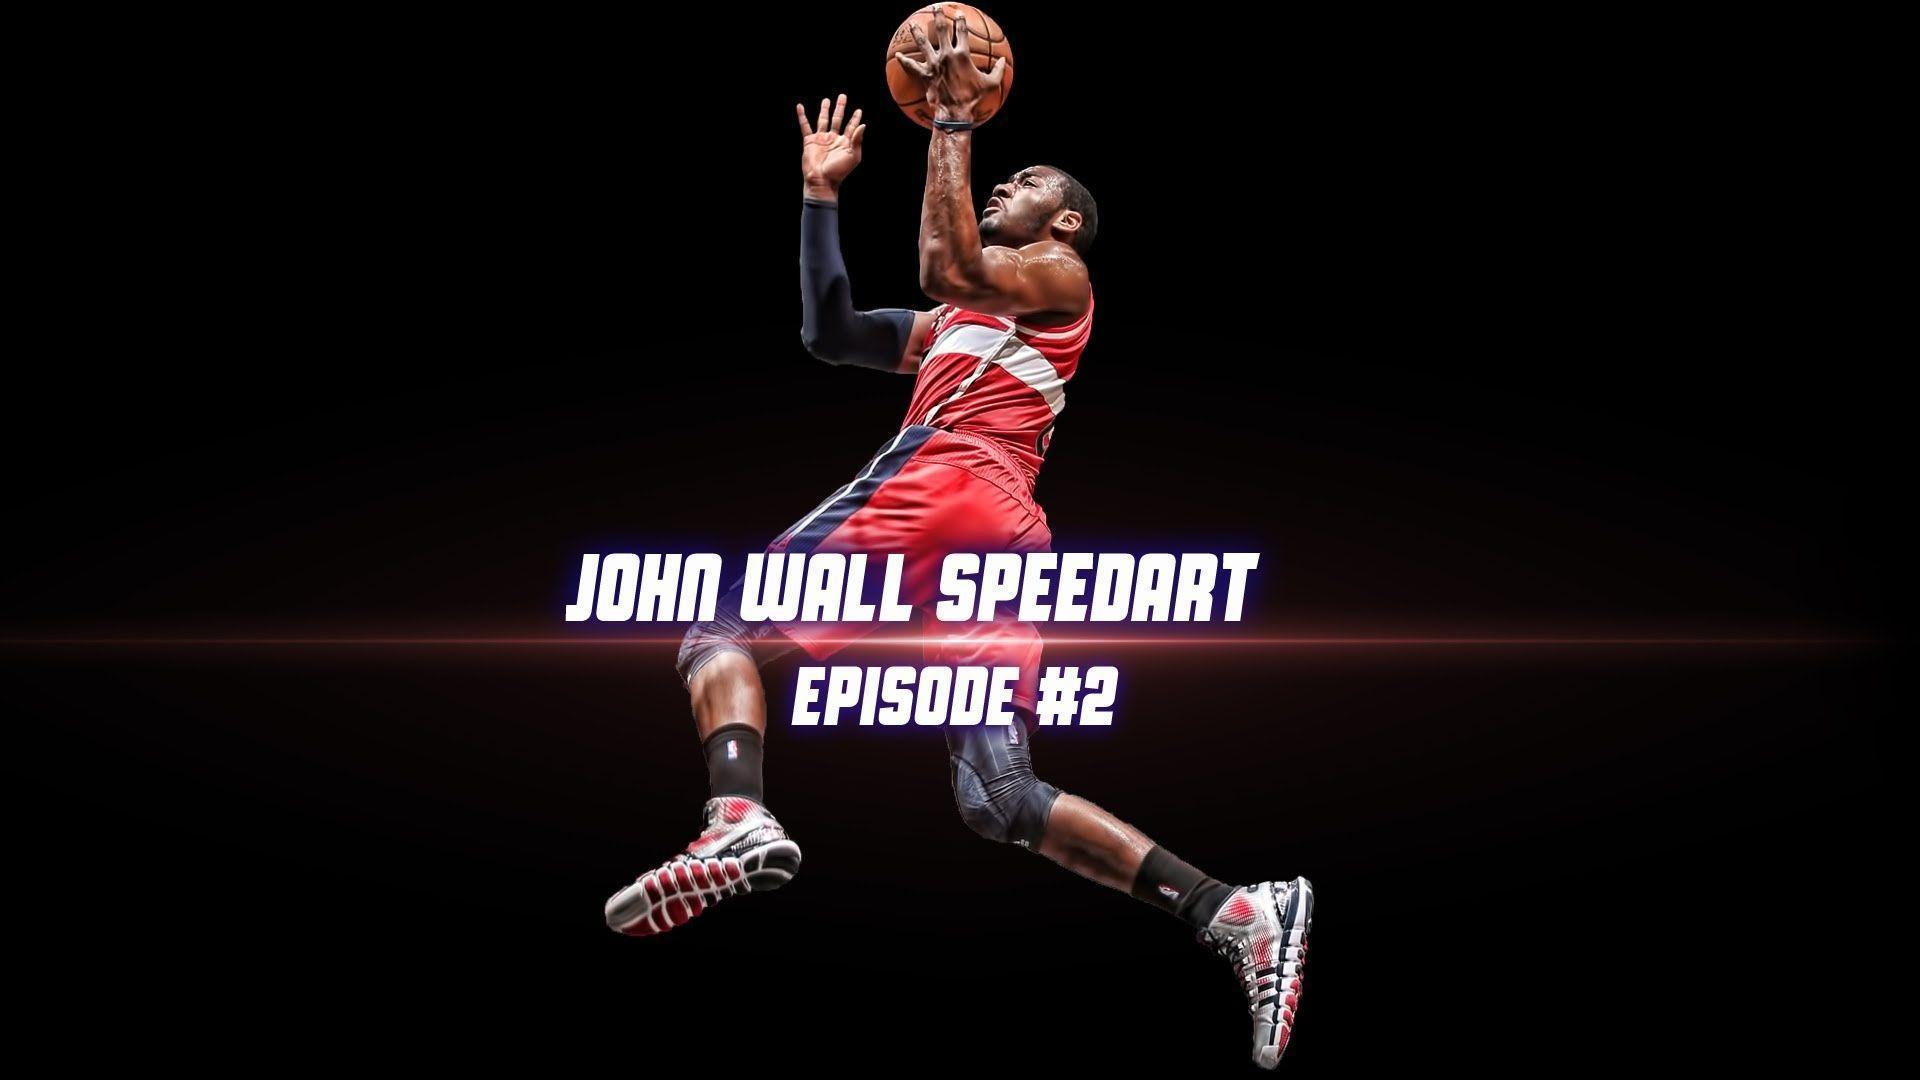 John Wall Wallpaper Speedart | Sport Design #2 - YouTube